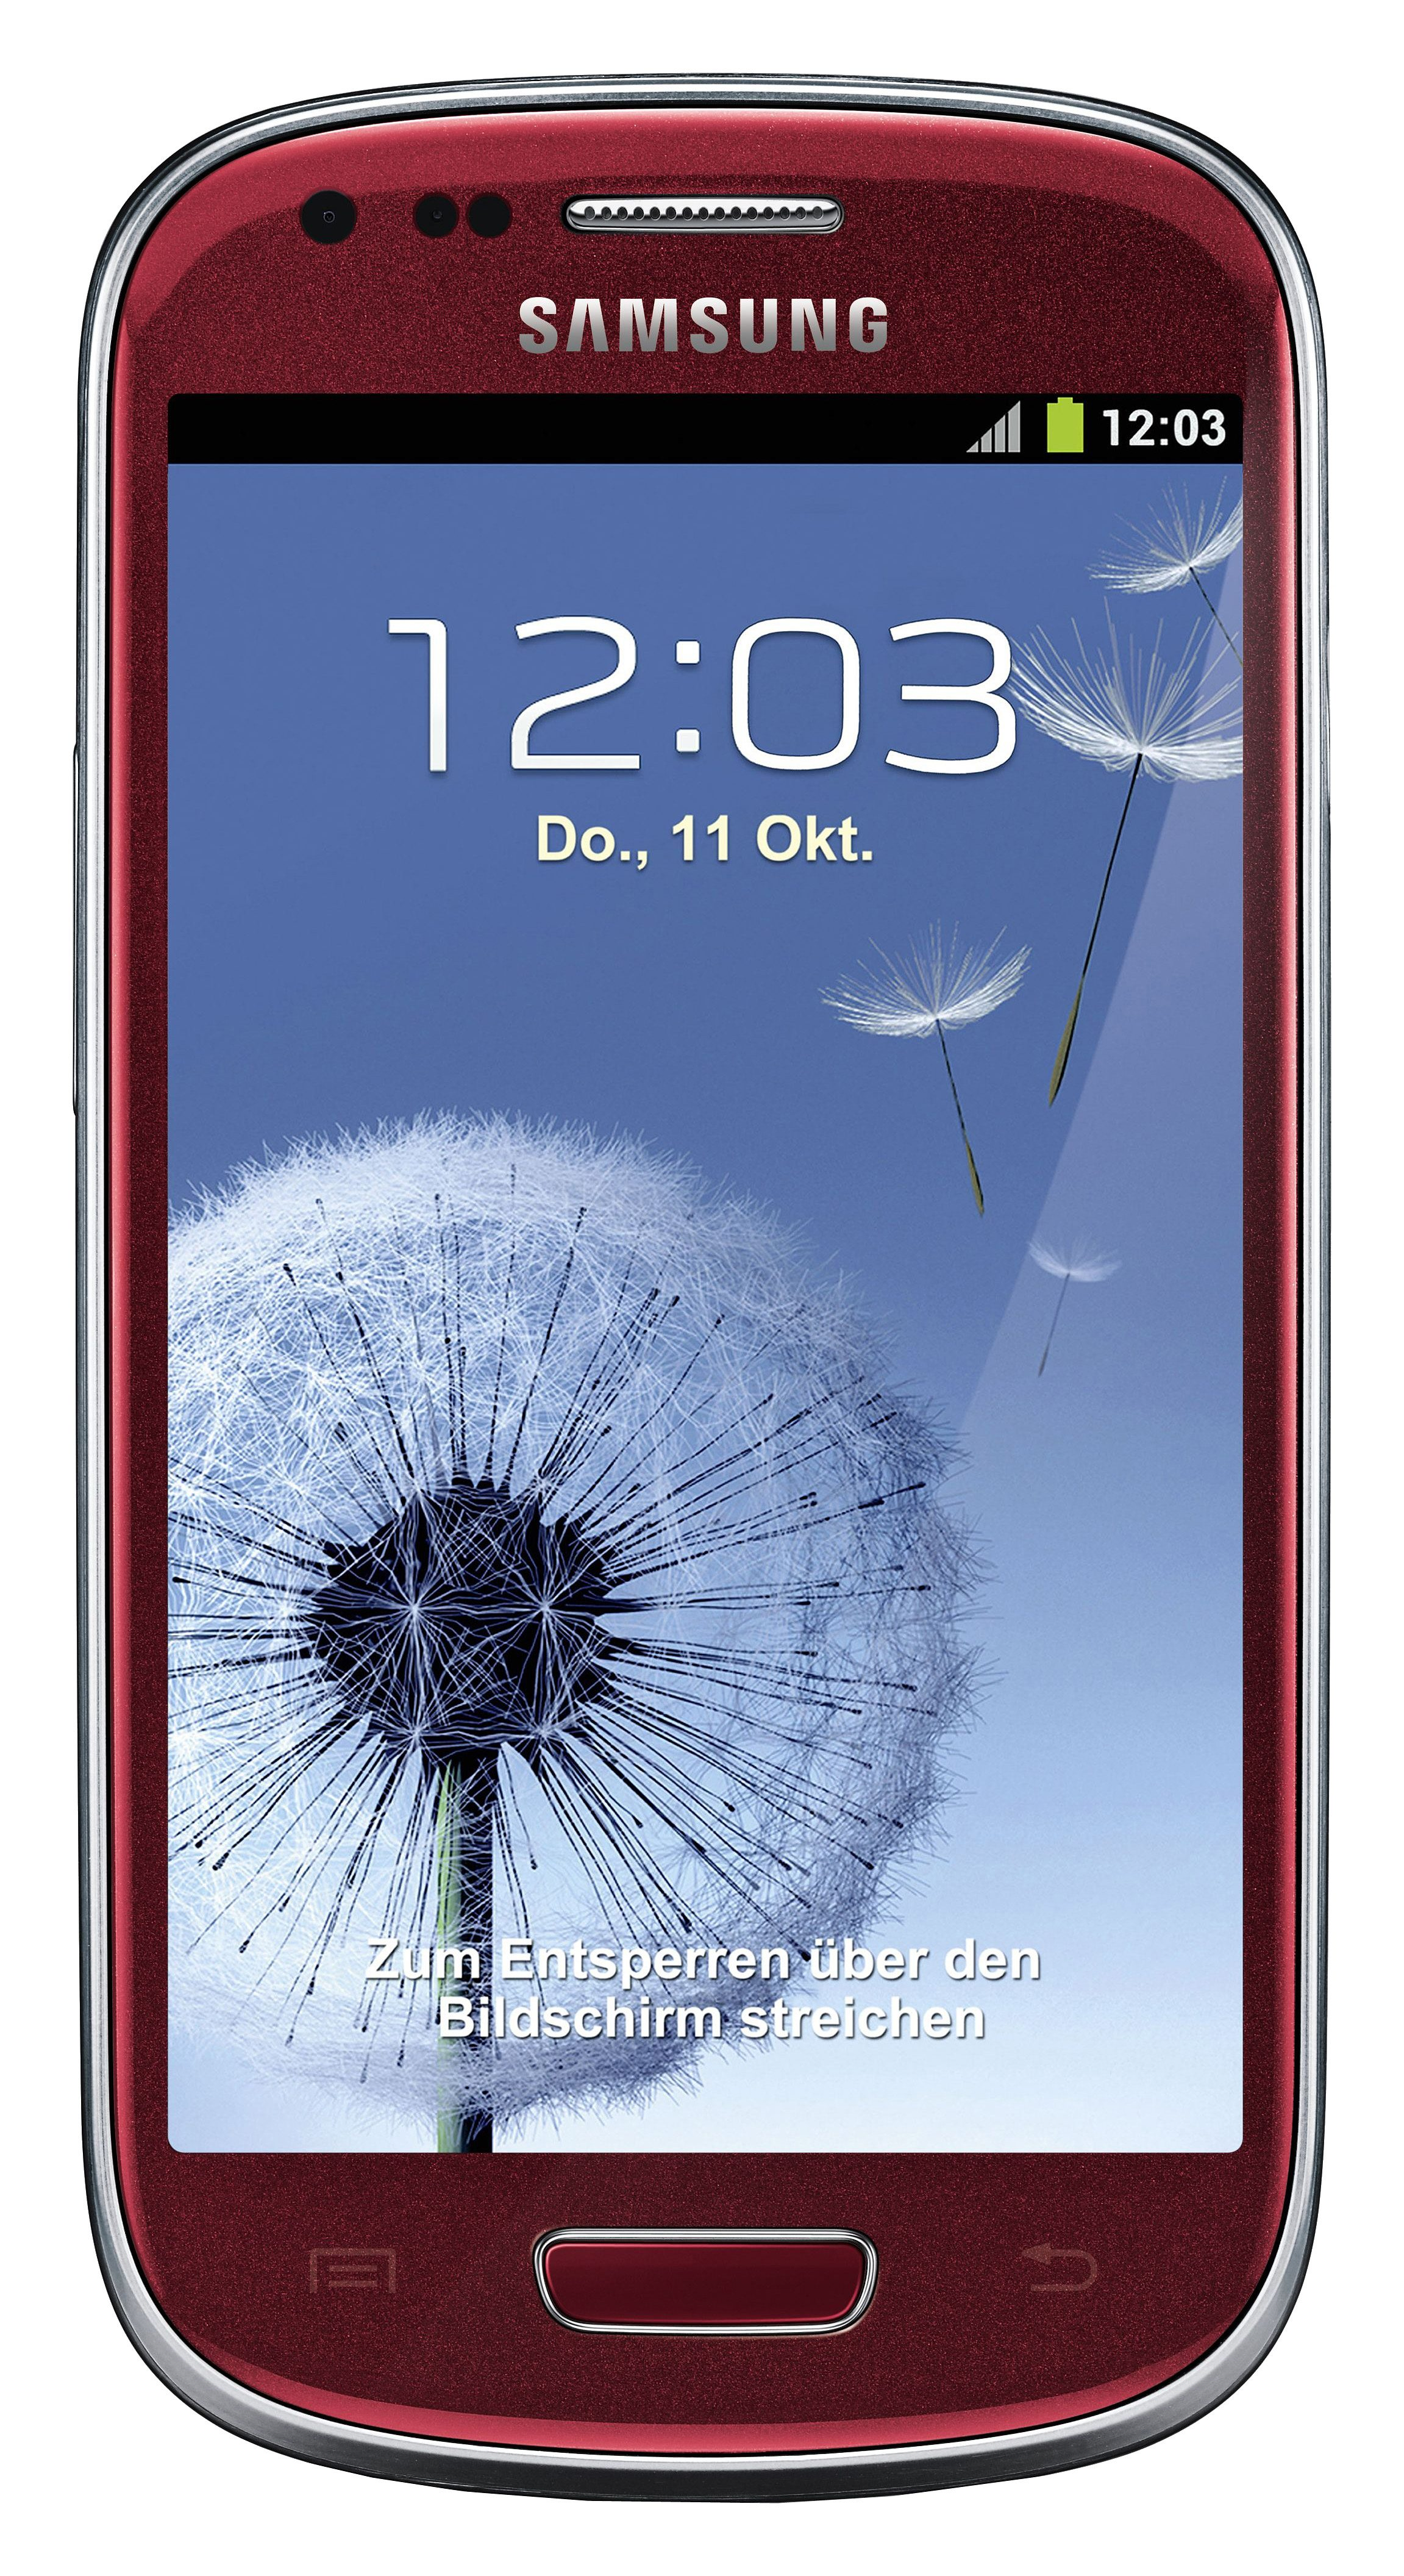 Samsung Galaxy S3 mini - I8190, Smartphone (4 Zoll) Display, Android 4.1, 5 Megapixel